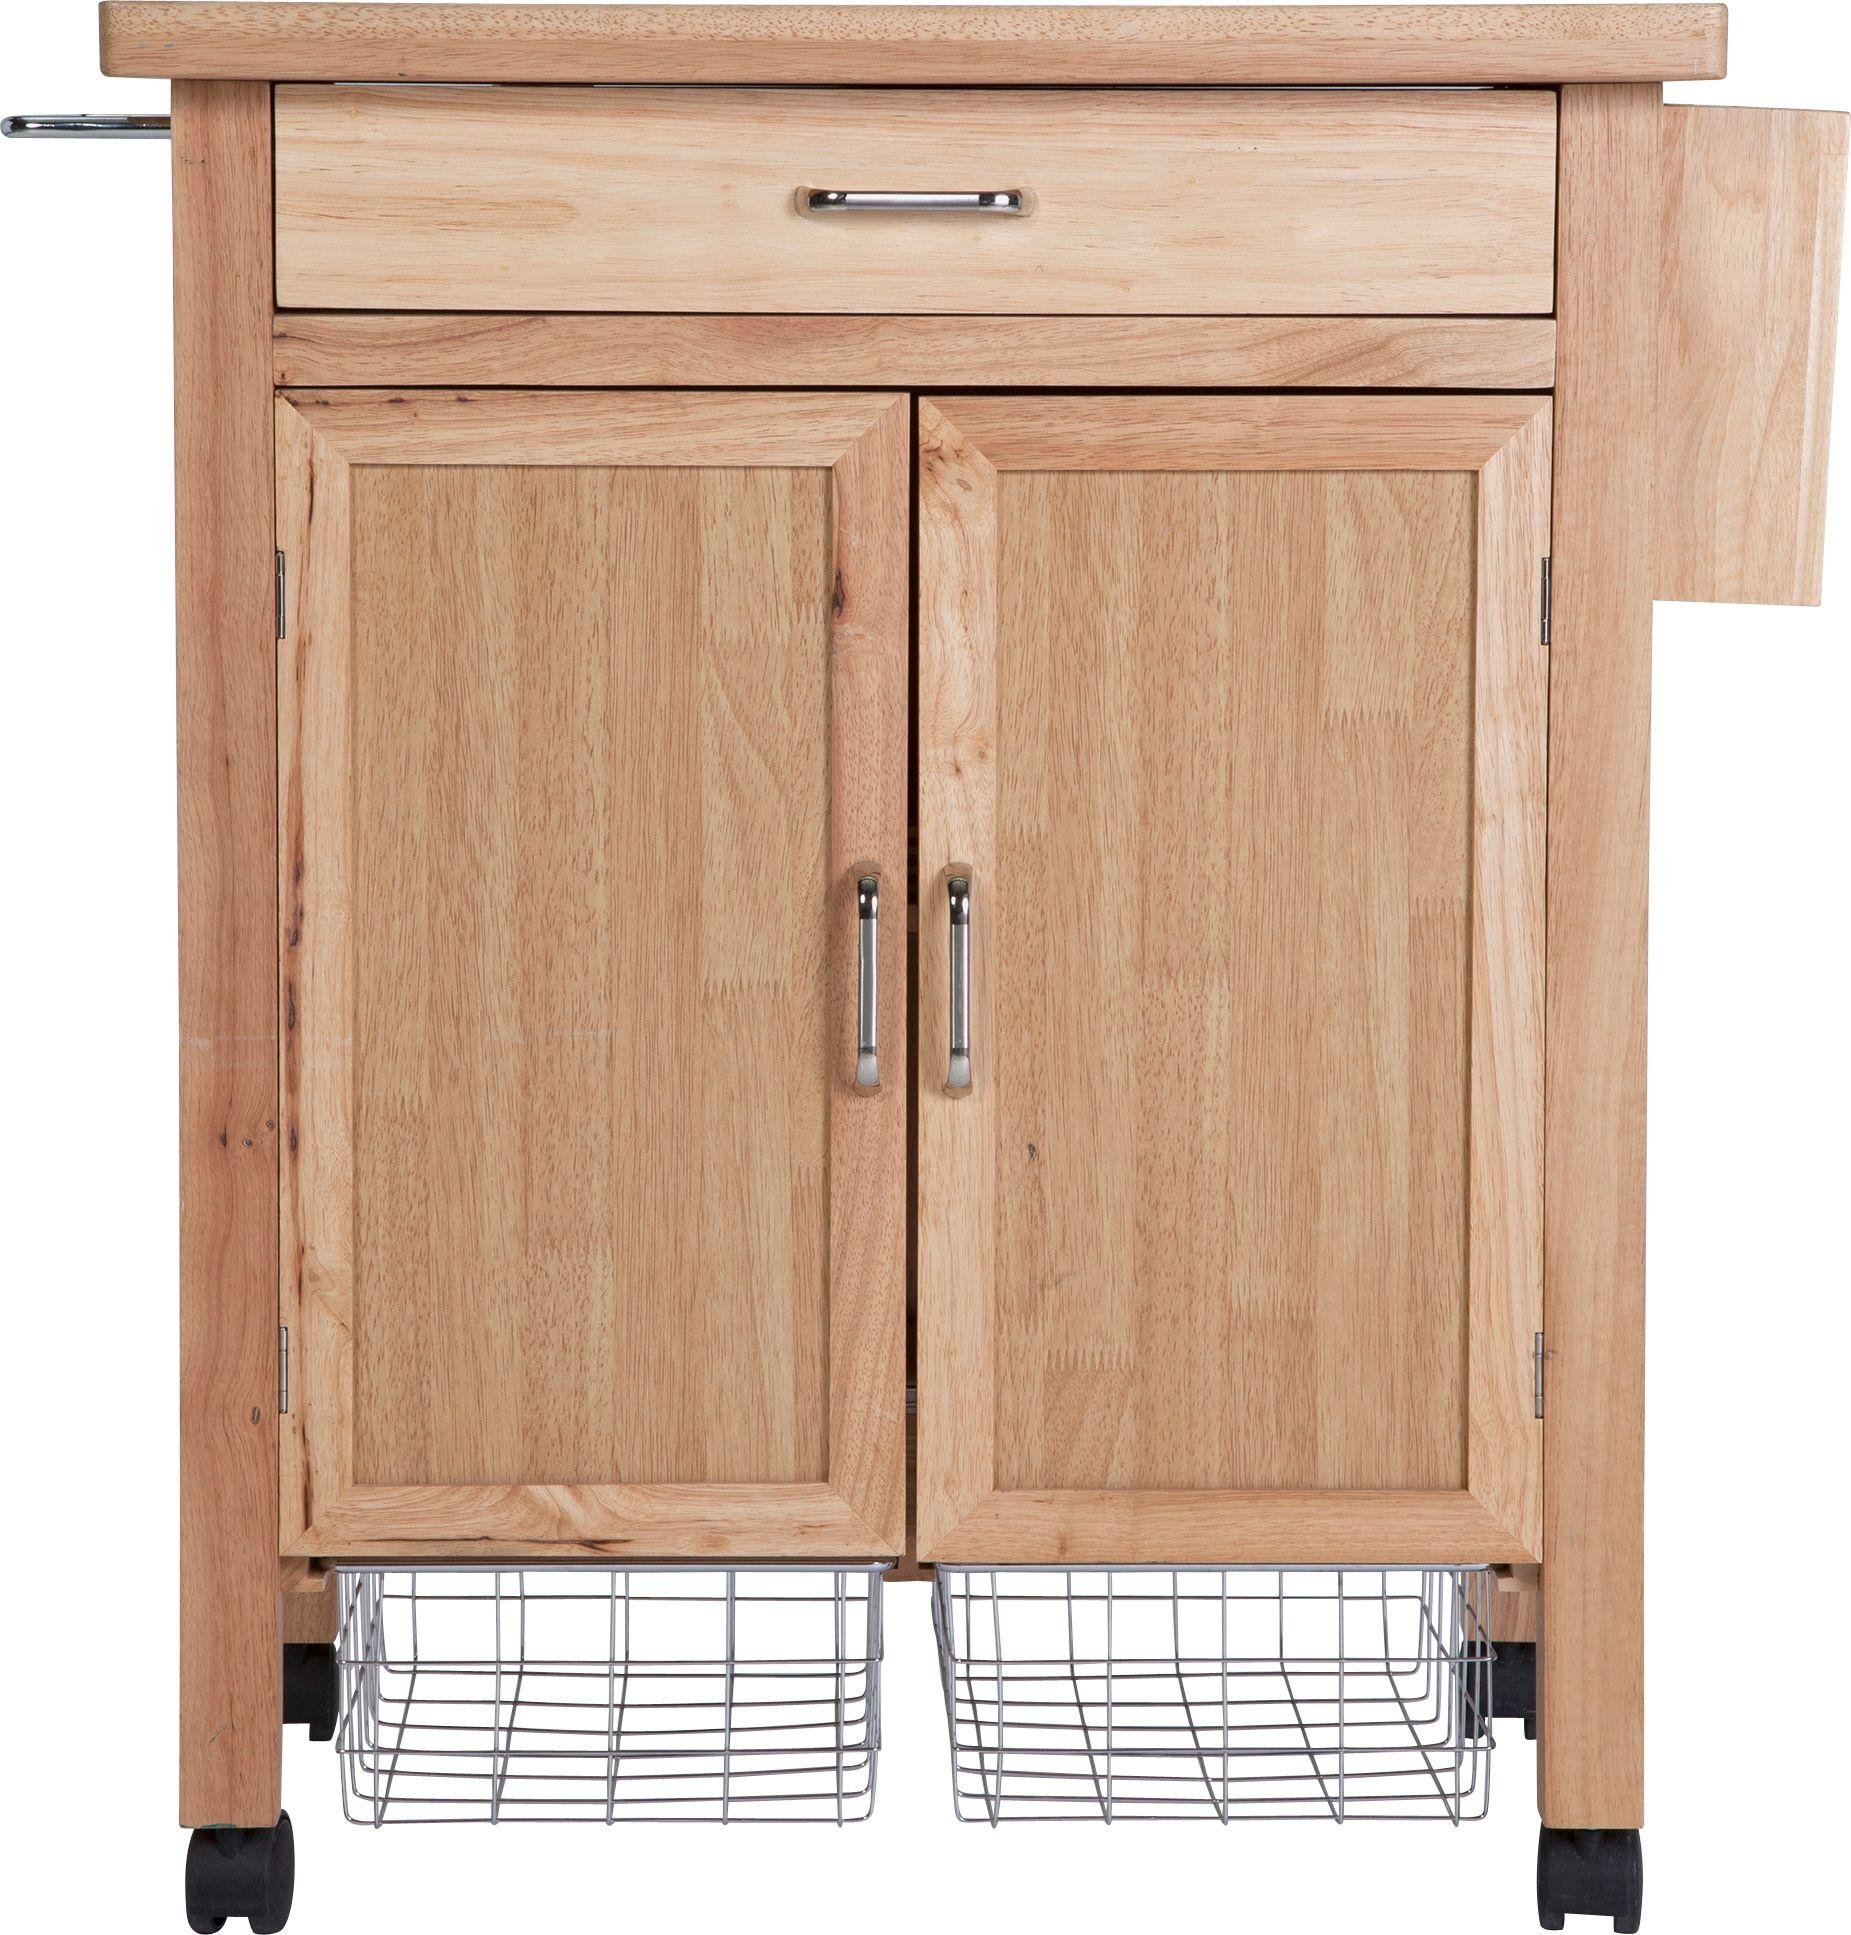 buy heart of house tollerton wooden kitchen trolley at argos co uk   your online shop for kitchen trolleys kitchen storage cooking dining and kitchen     buy heart of house tollerton wooden kitchen trolley at argos co uk      rh   argos co uk